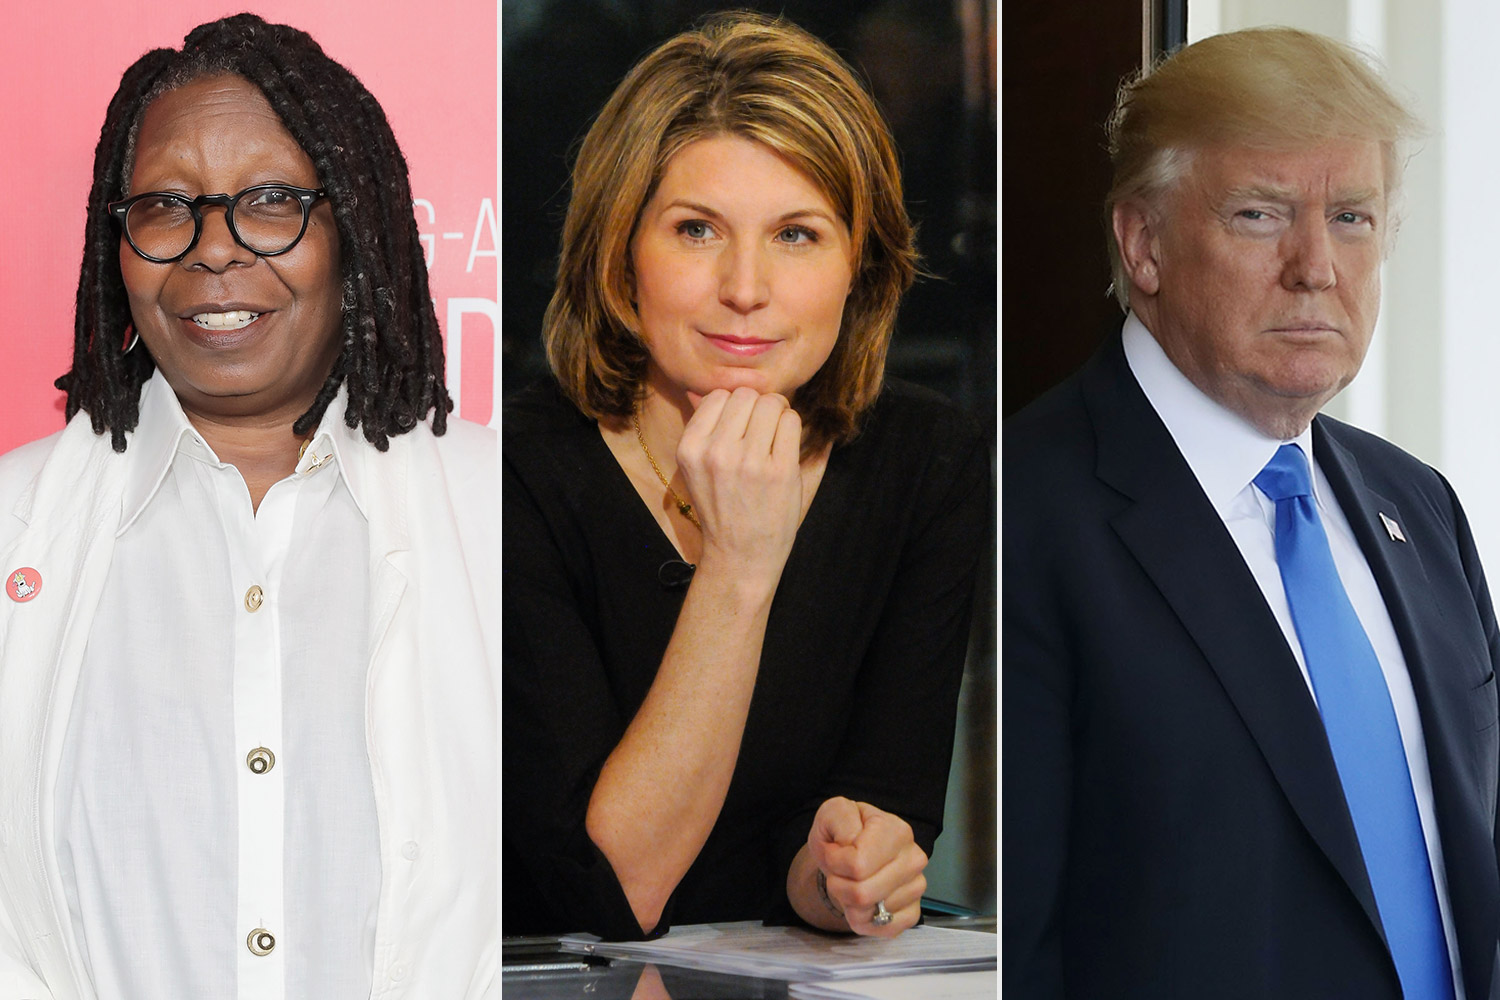 Nicolle Wallace, Donald Trump and Whoopi Goldberg